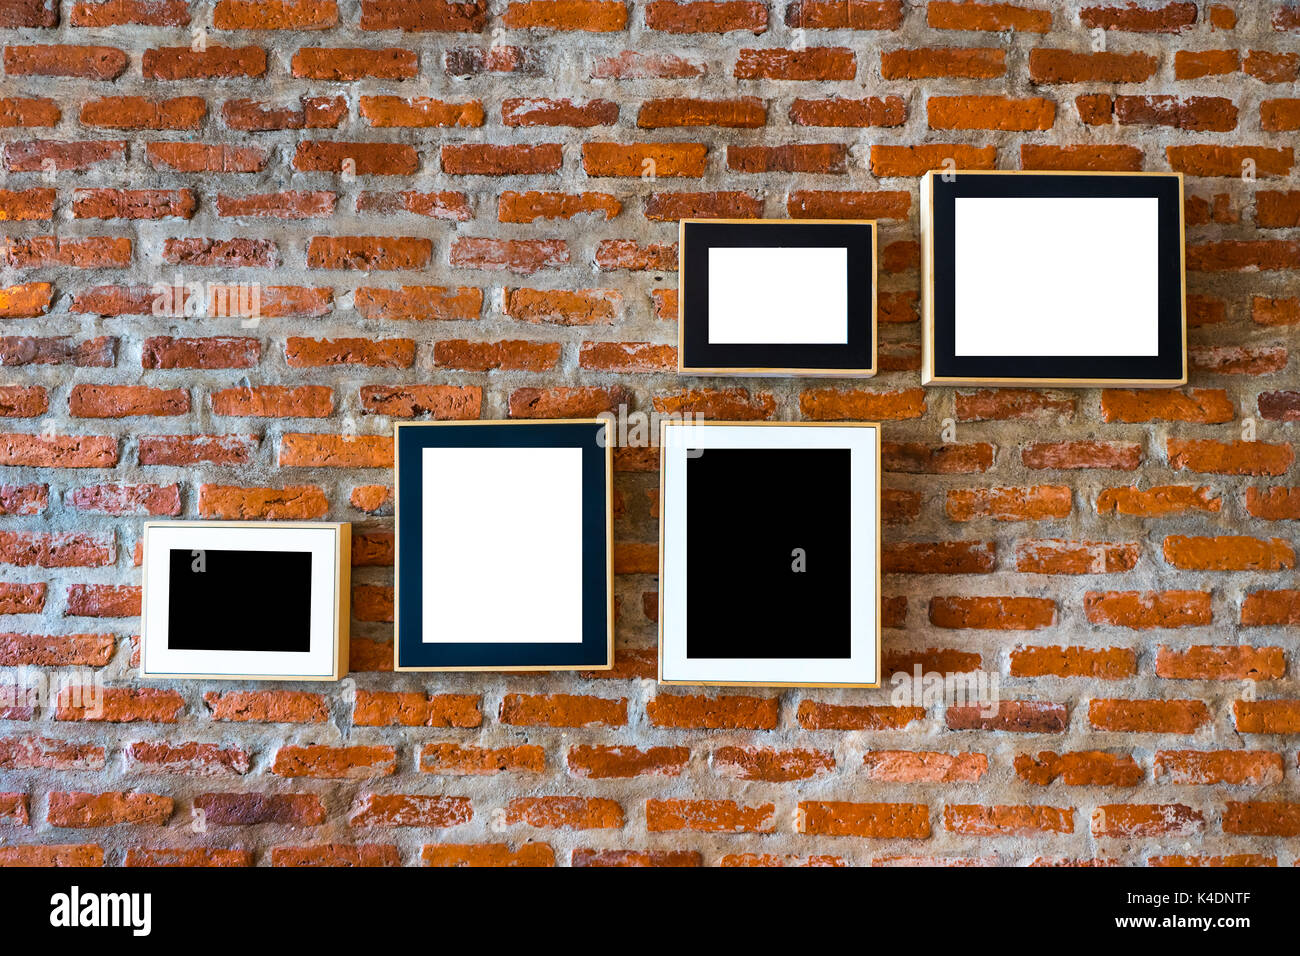 Brick wall decorated with photo frames left blank in black and white - Stock Image